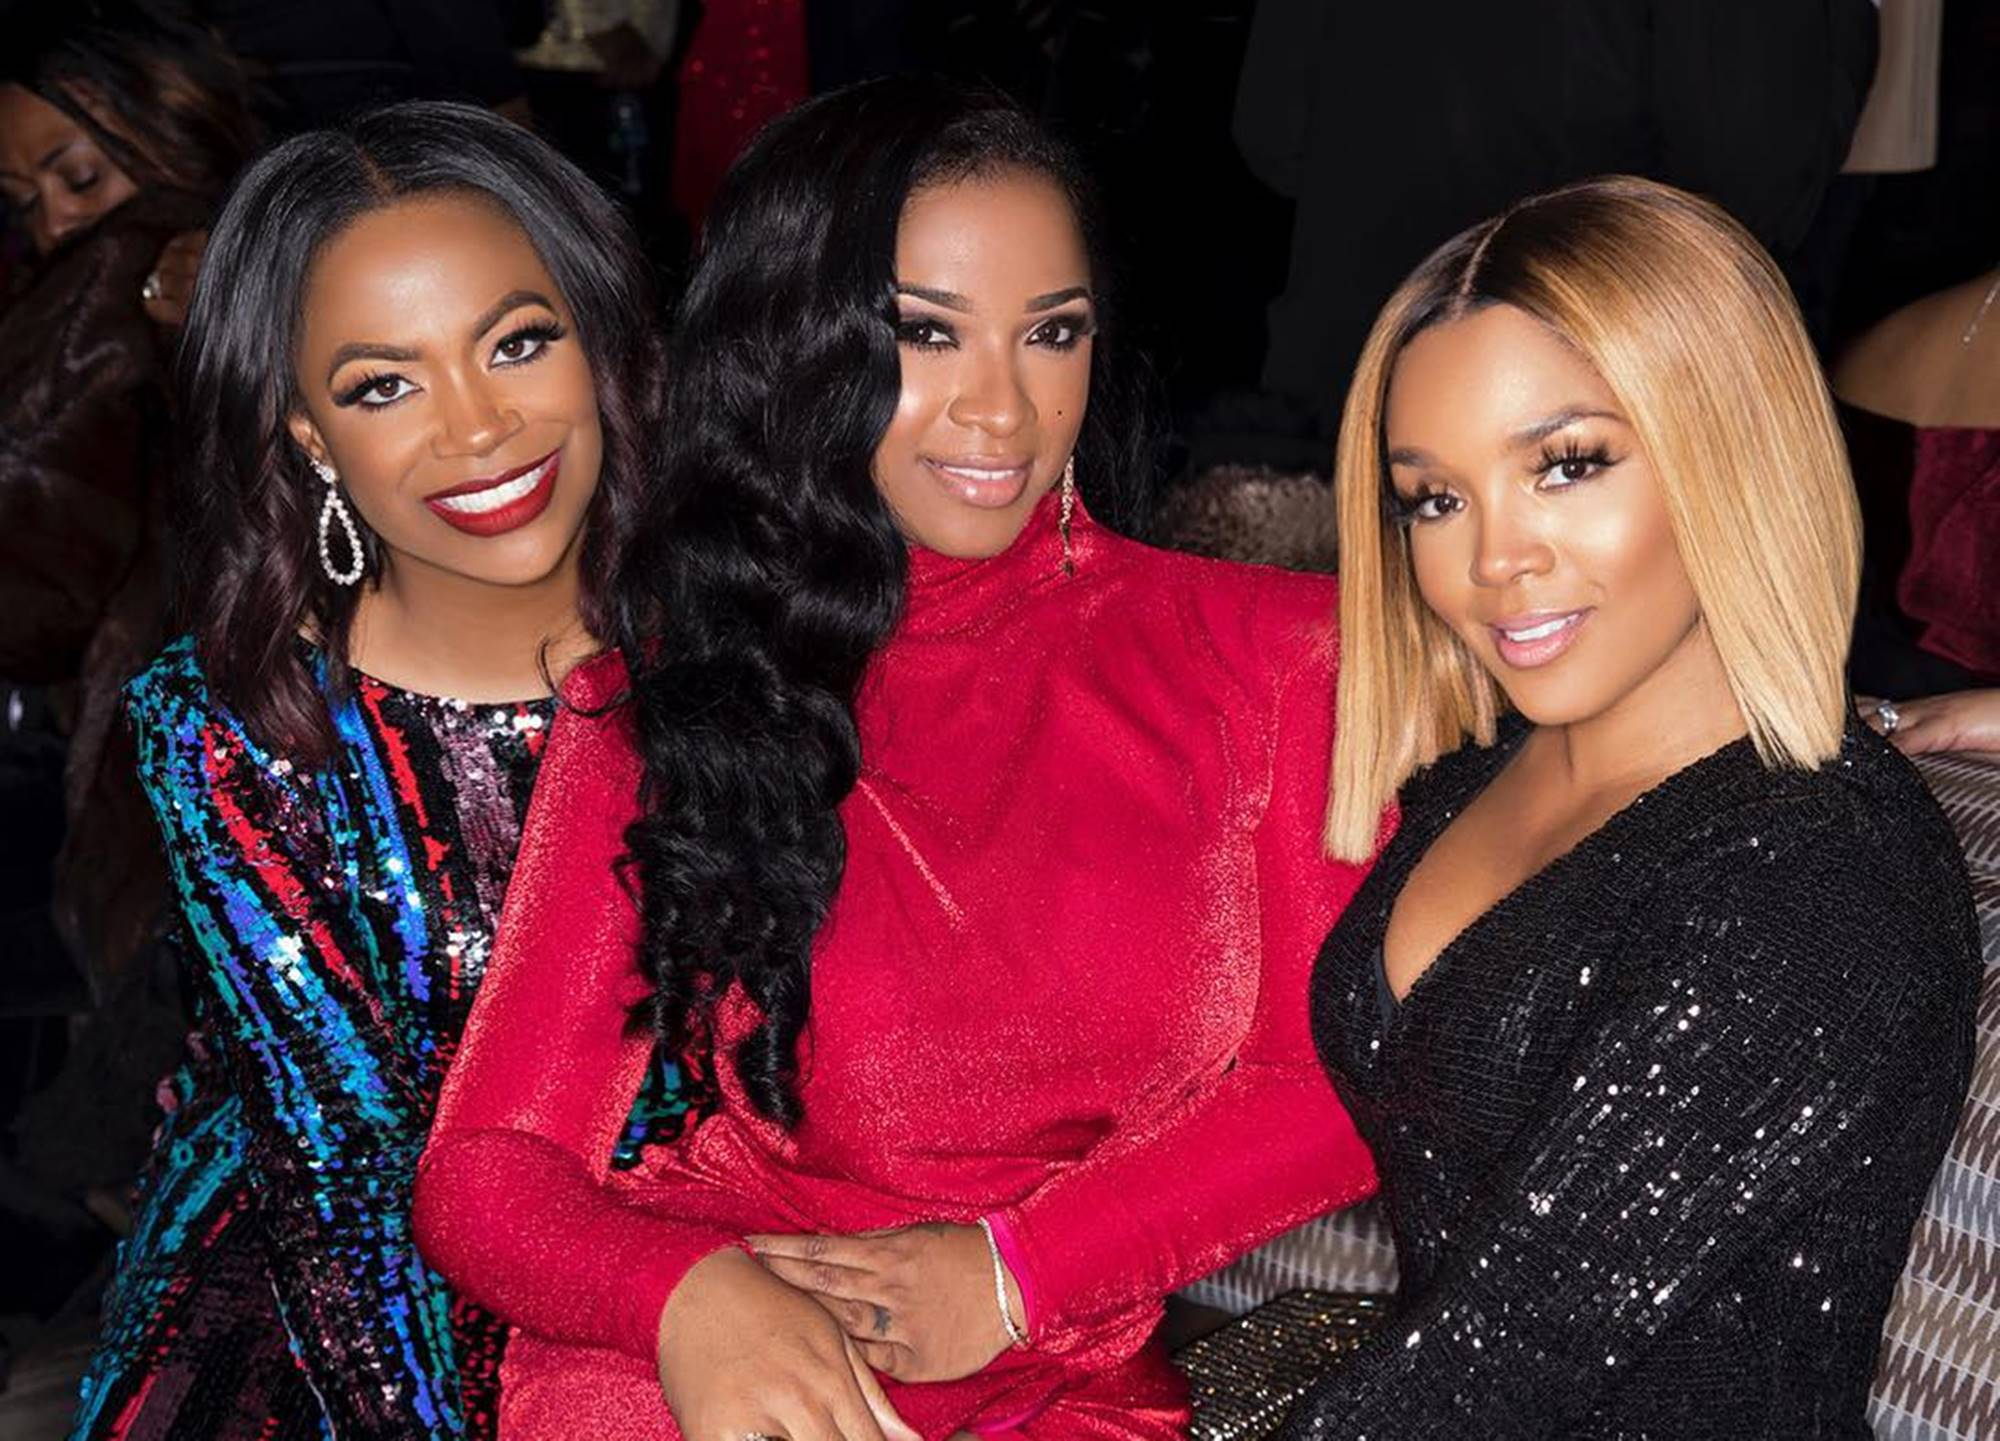 rasheeda-frost-and-kandi-burruss-flaunt-amazing-figures-wearing-colorful-bathing-suits-in-birthday-vacation-pictures-see-what-toya-wright-said-for-the-occasion